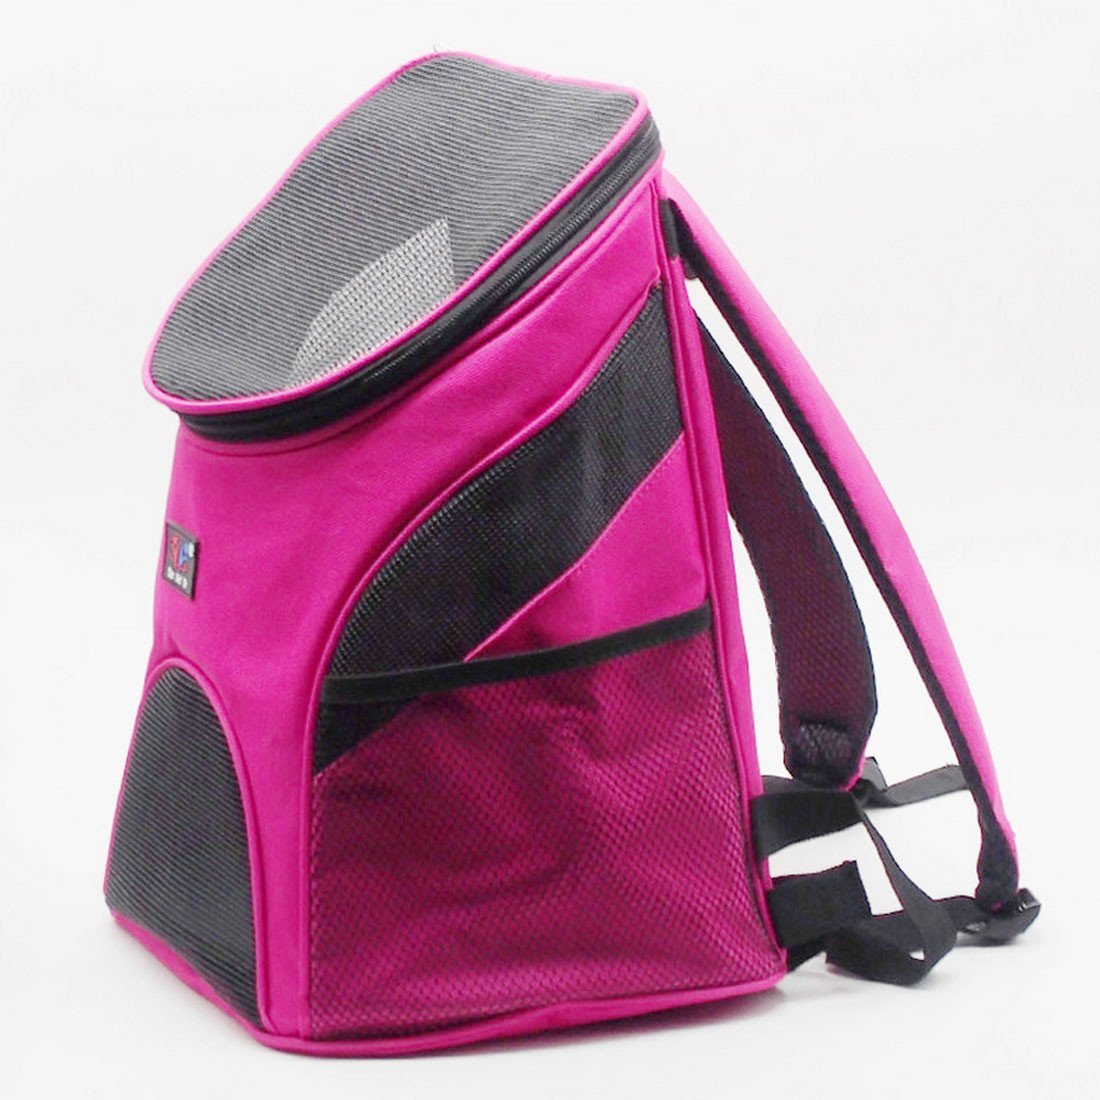 Double Shoulder Mesh Backpack Bag - best-pet-store-supplies